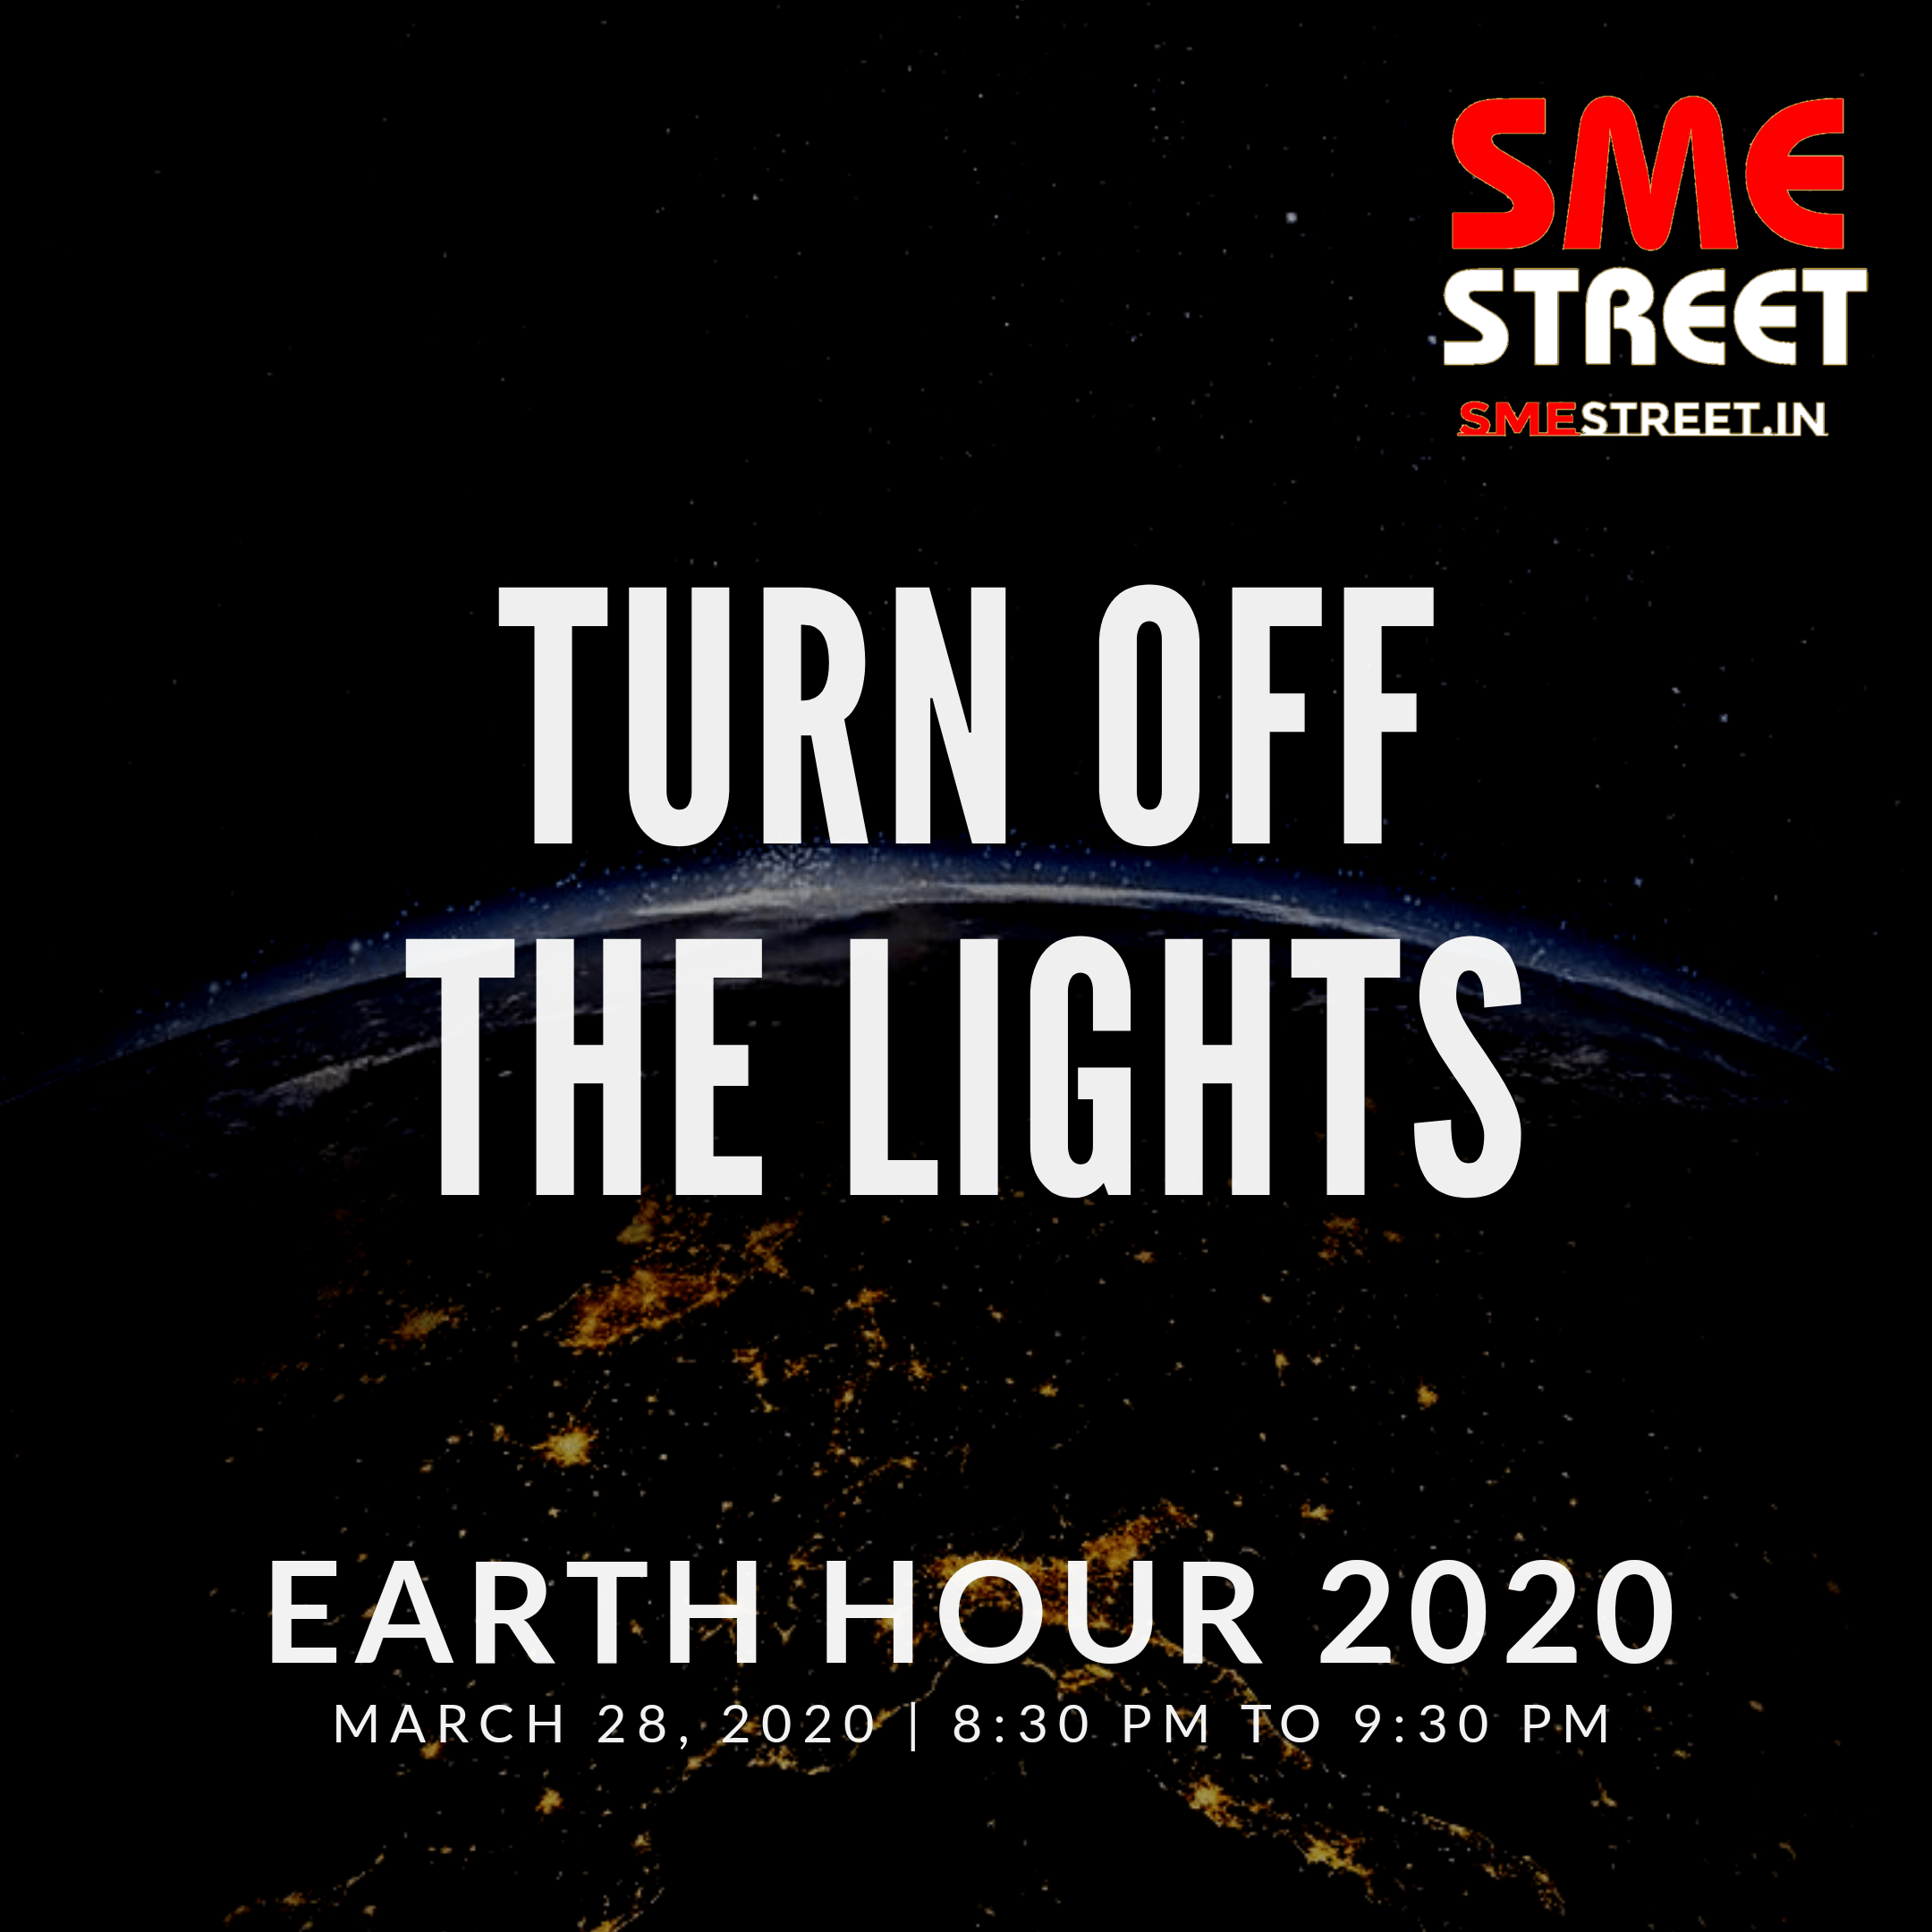 Celebrating The Earth Hour Tonight From 8:30 PM To 9:30 PM